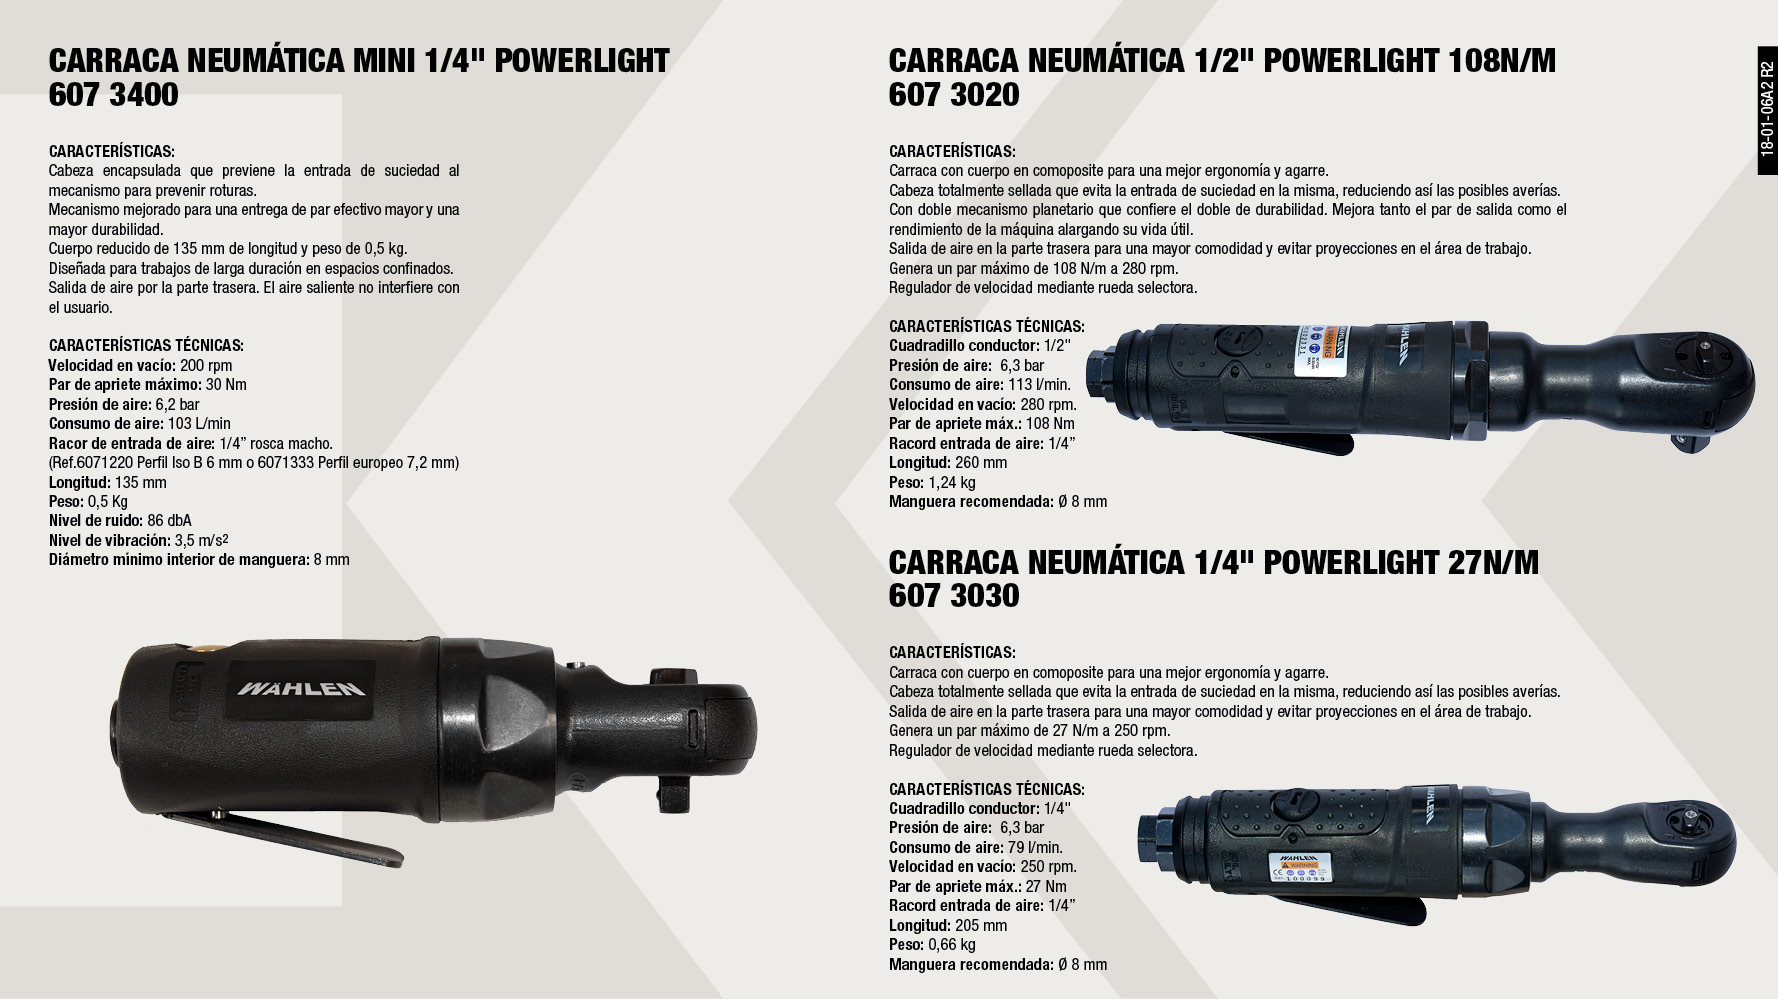 CARRACA NEUMATICA MINI 1/4' POWERLIGHT                      ,